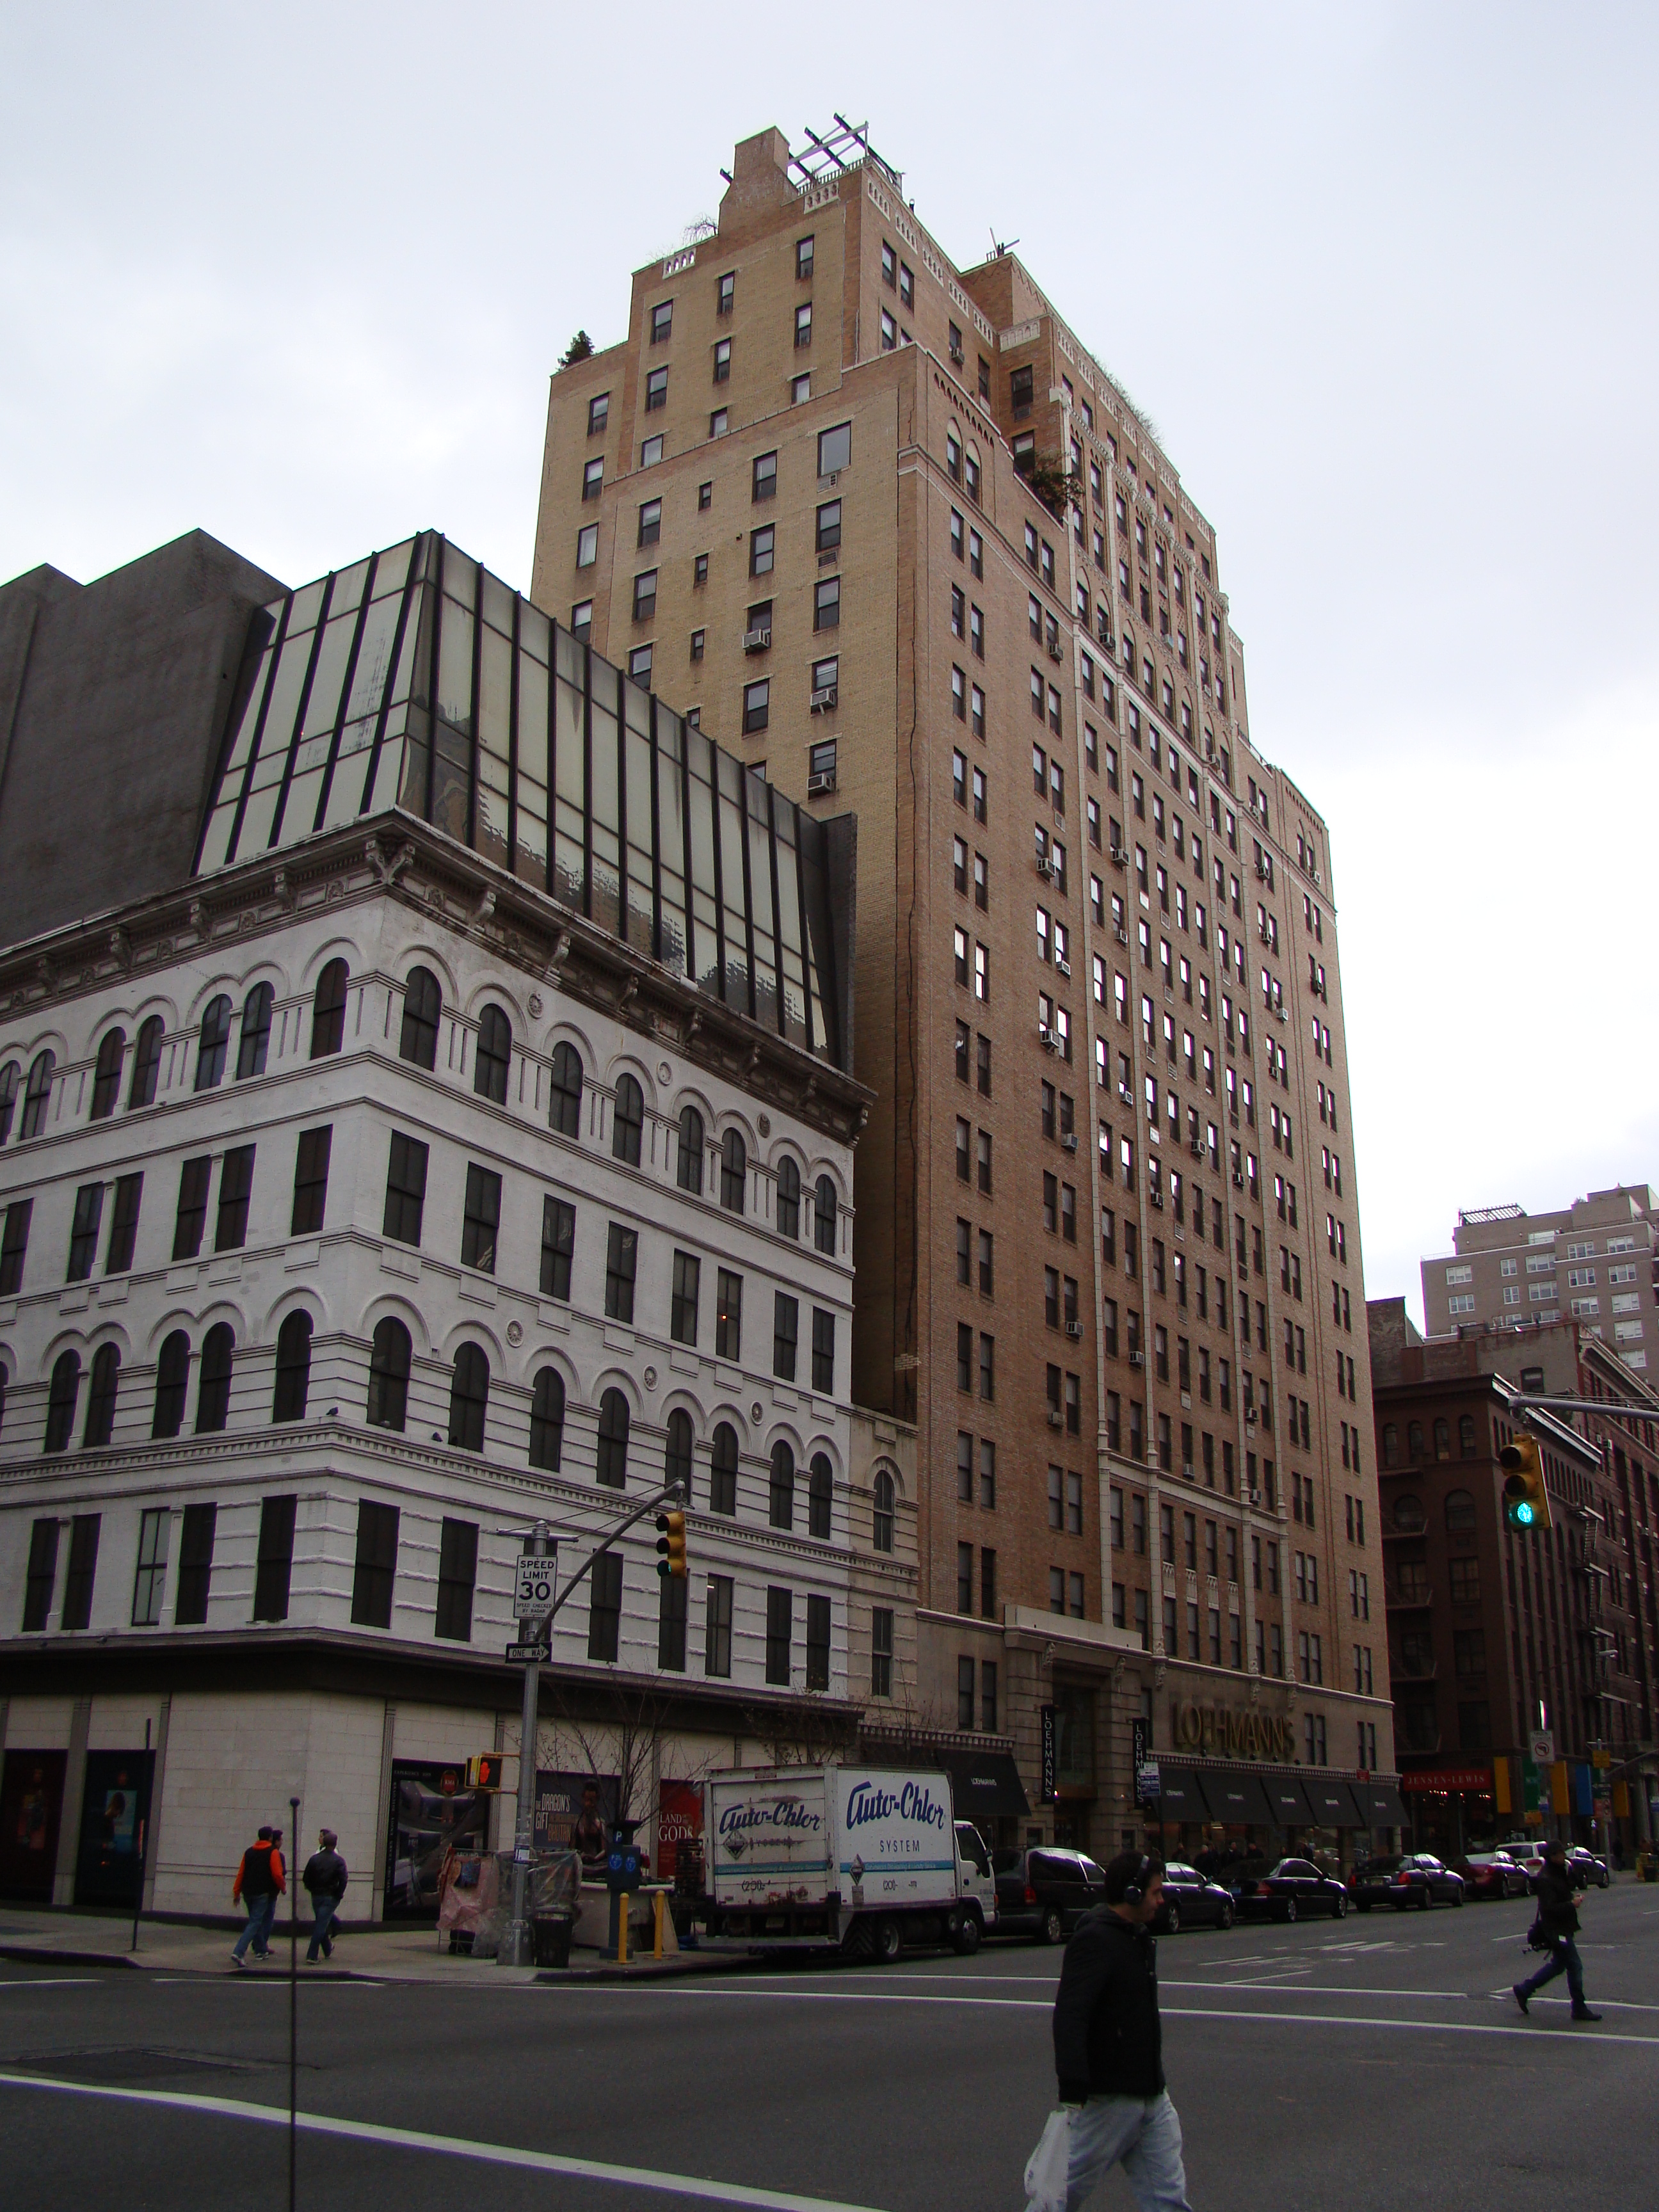 161 West 16th St.